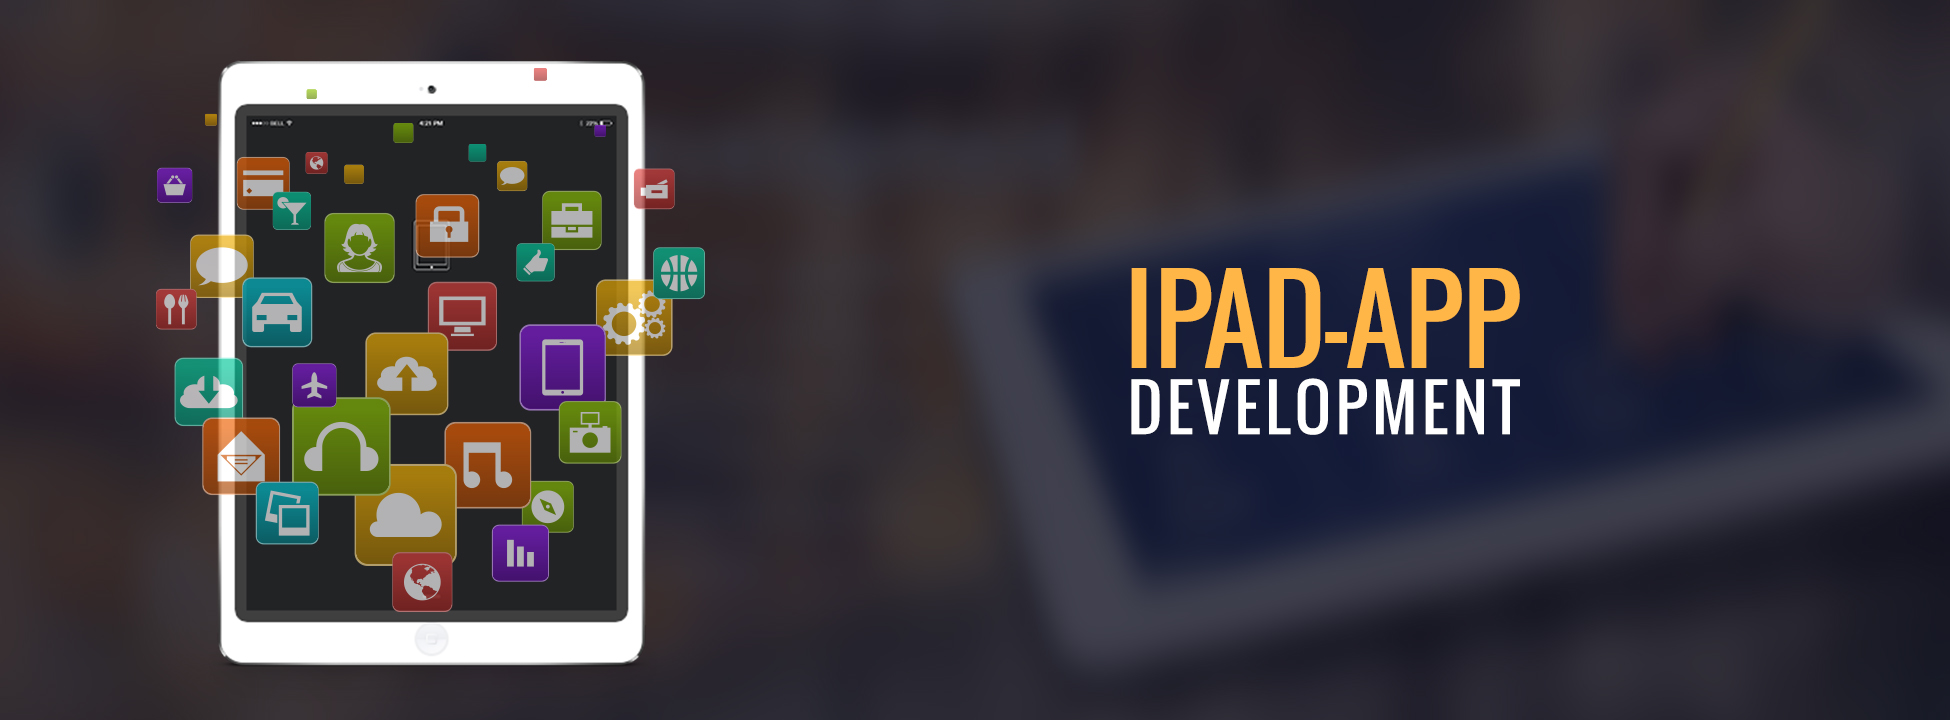 iPad Apps Development - Nextbigtechnology